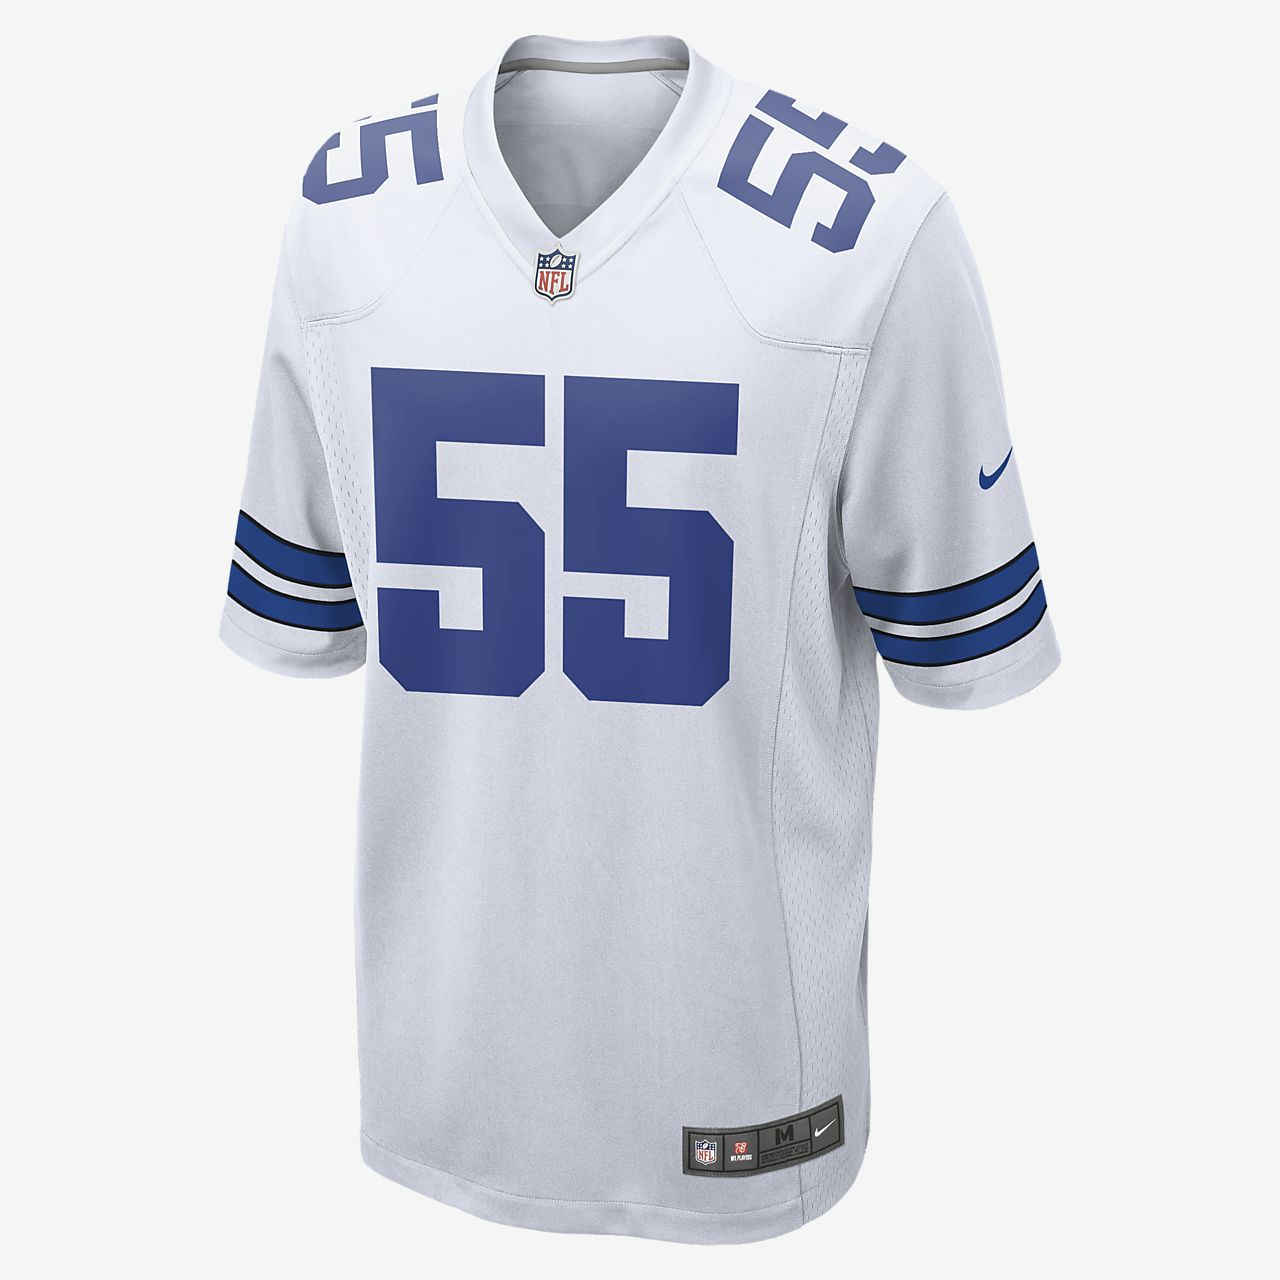 low priced 8ca1d a9c04 NFL Dallas Cowboys Game (Leighton Vander Esch) Men's Football Jersey